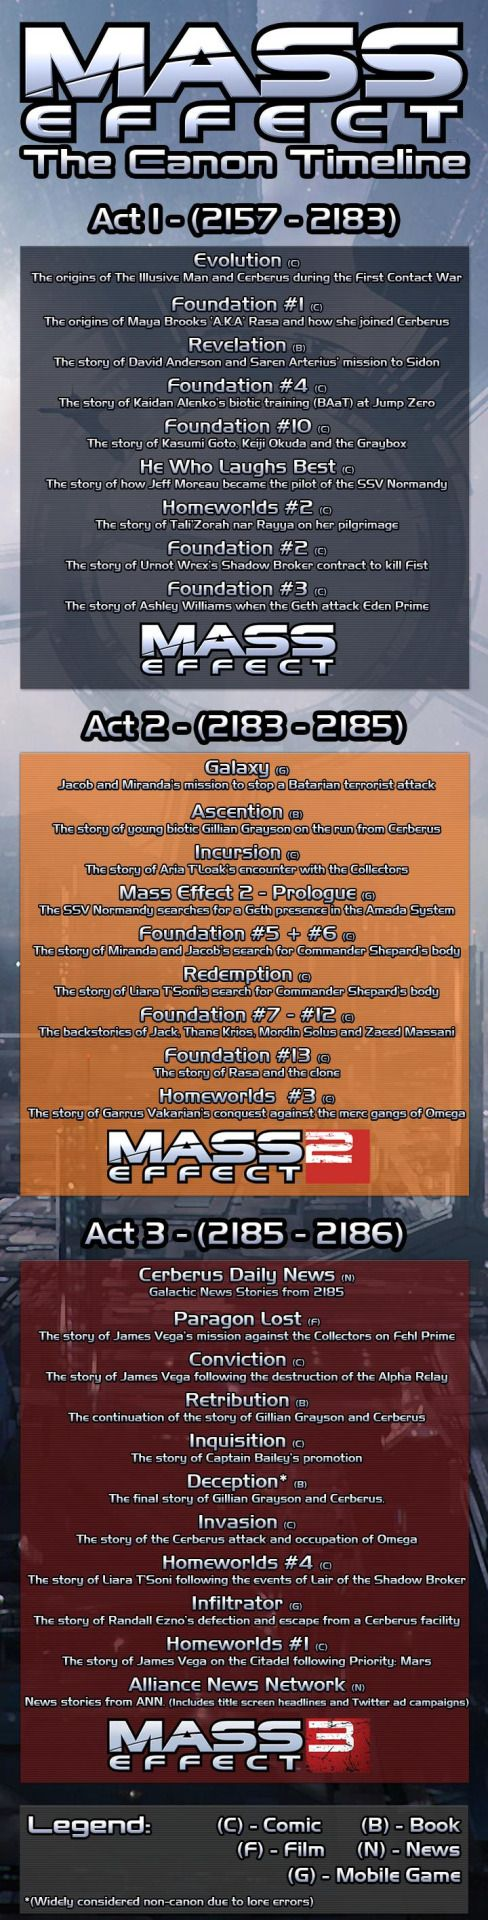 Mass Effect canon timeline outside the games